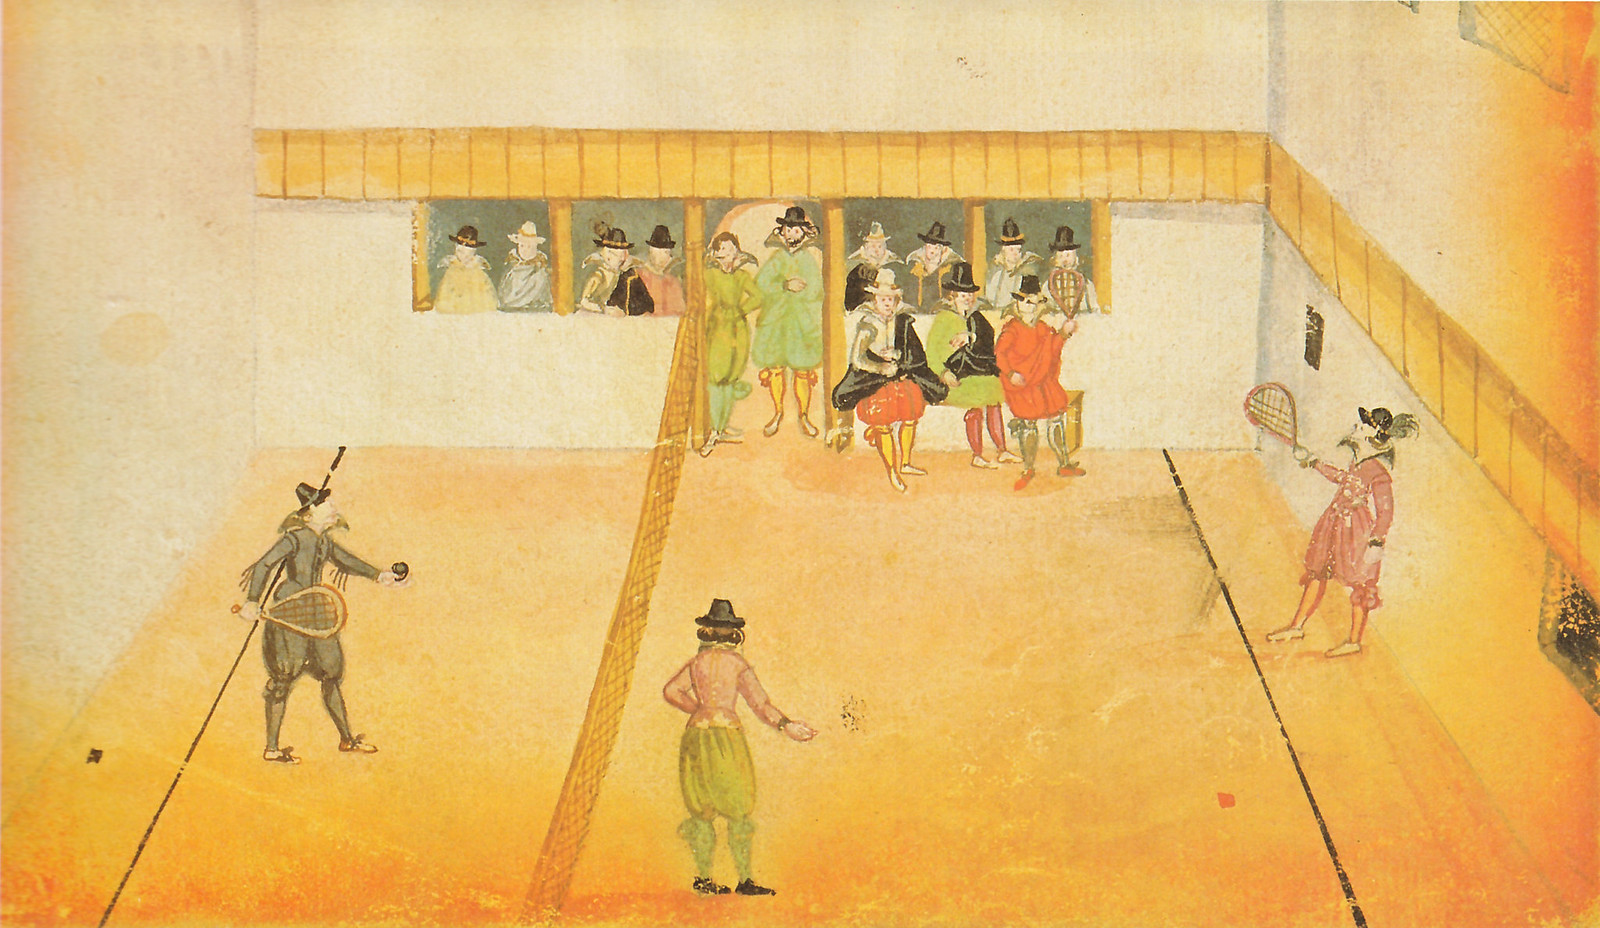 Watercolor painting from an unknown German student who had studied in Italy (Padua or Siena), depicting an early form of Tennis